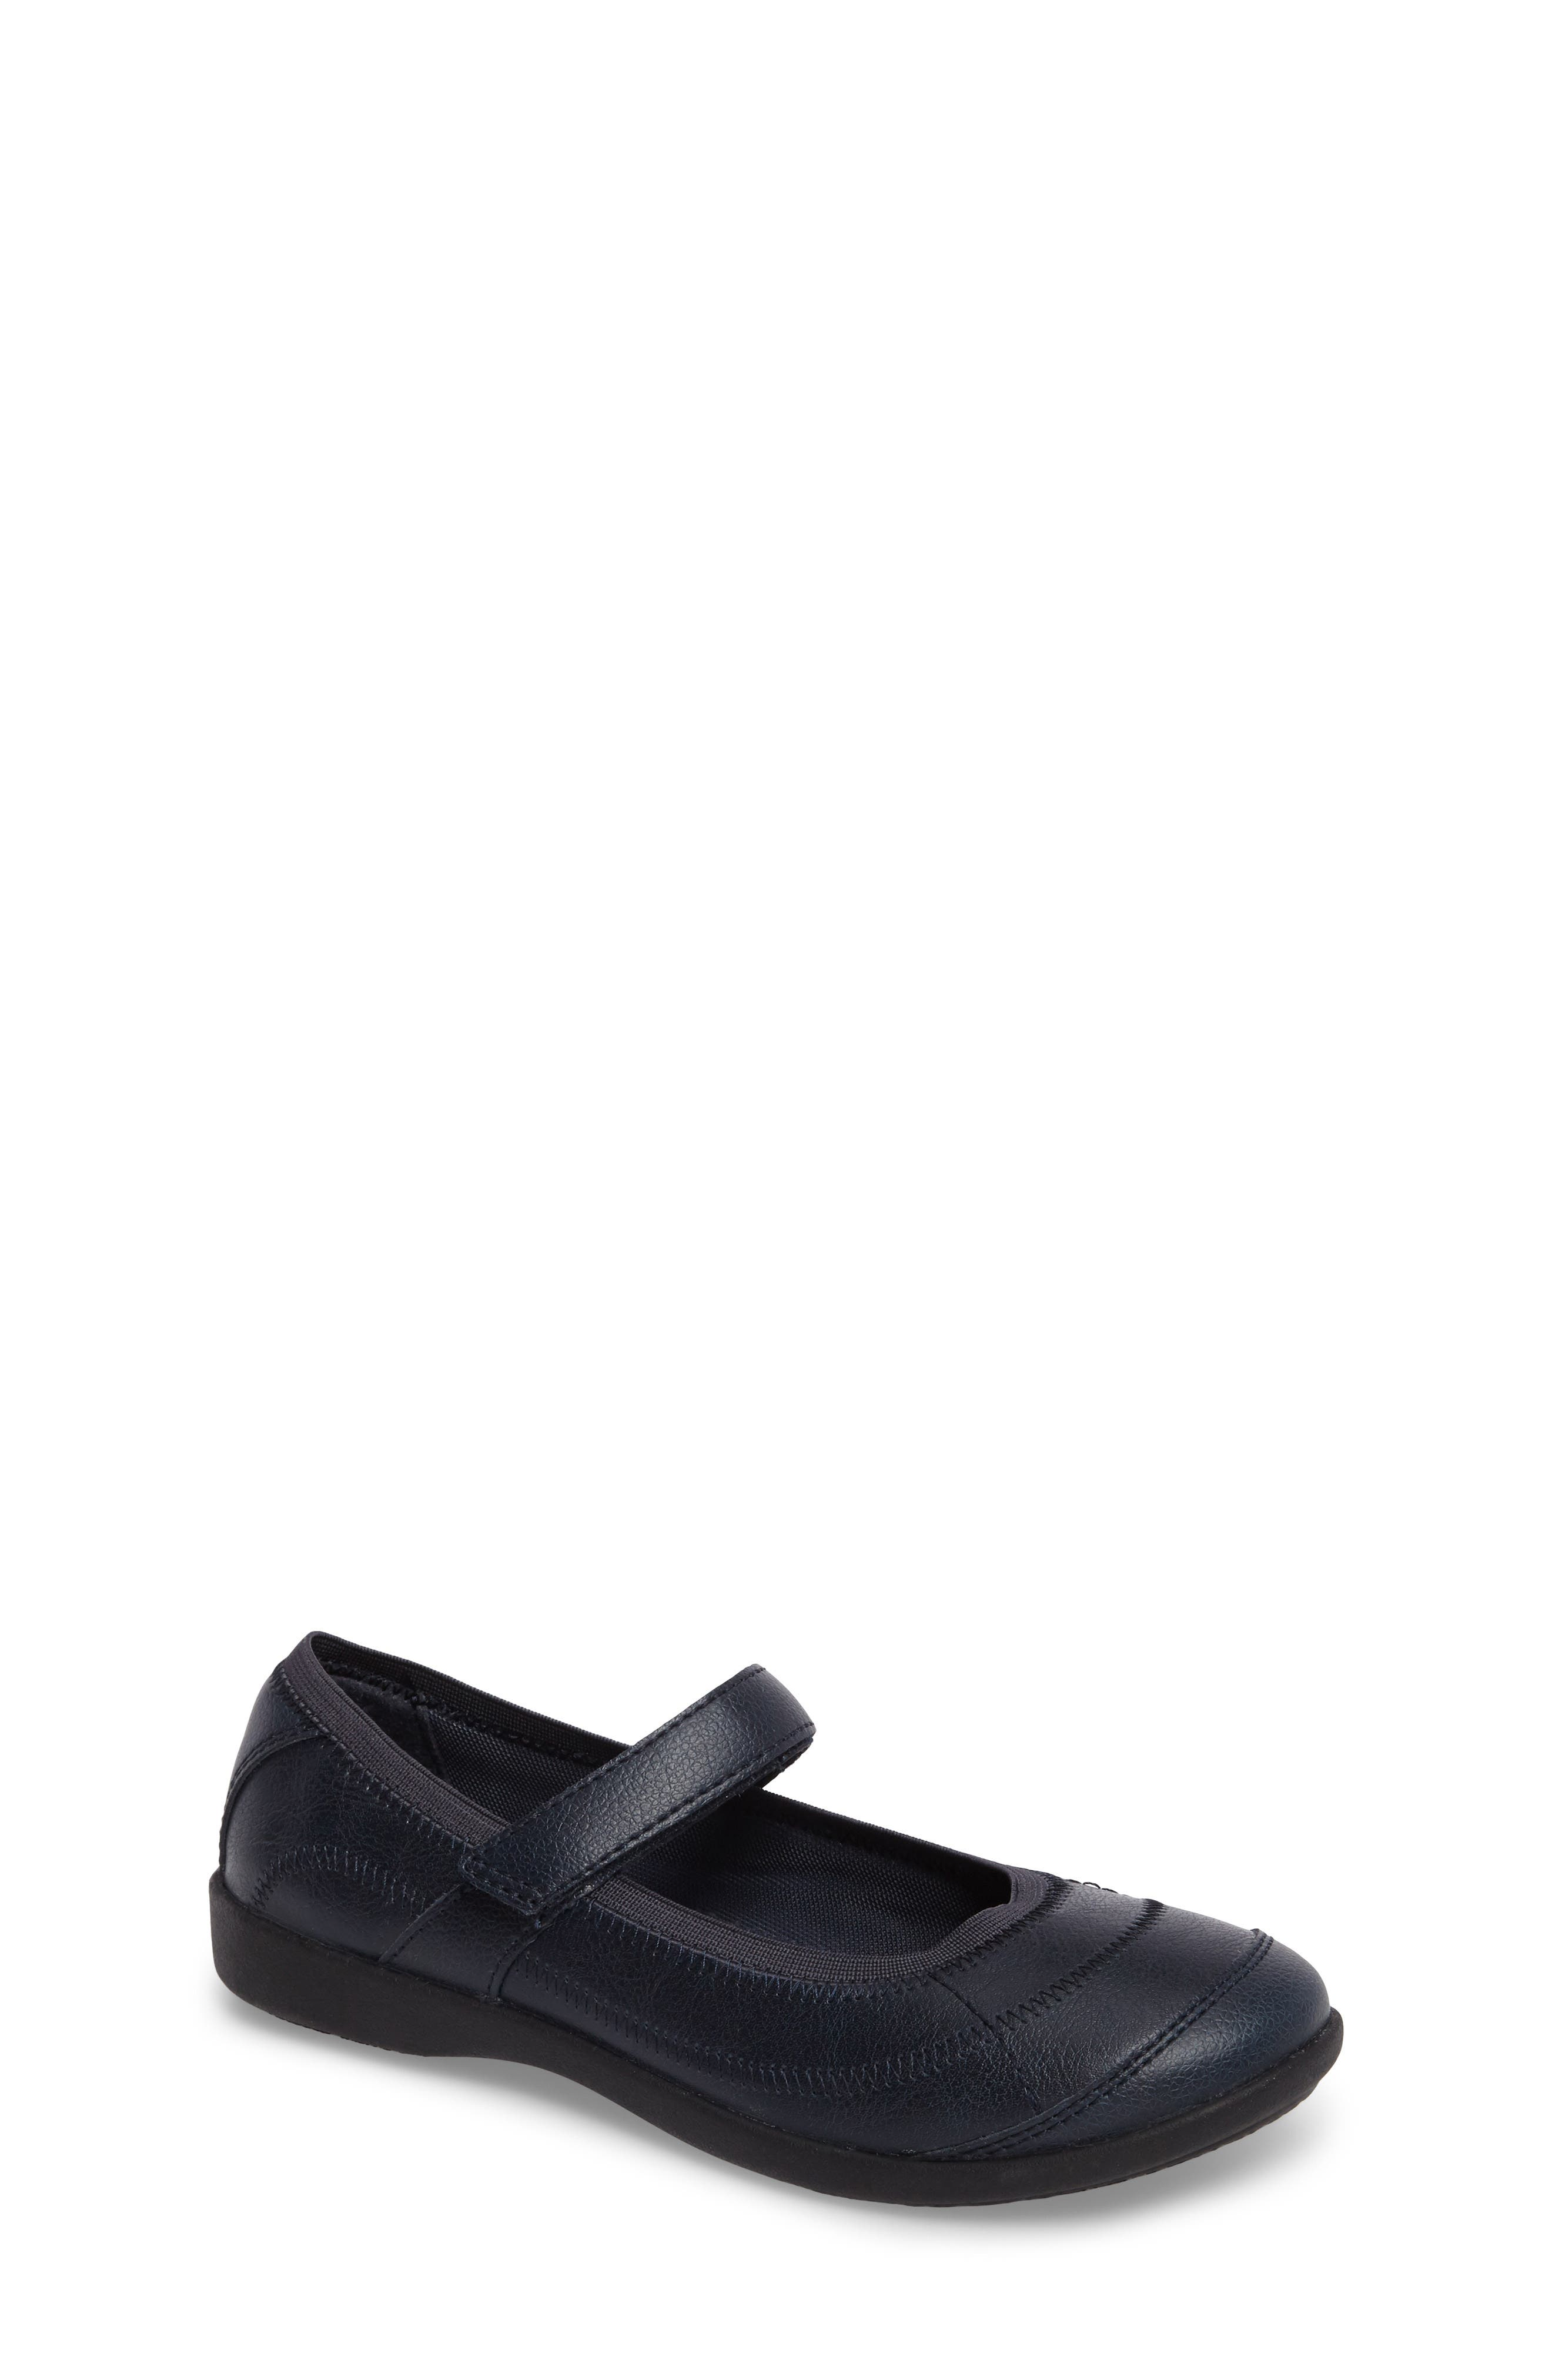 Reese Mary Jane Flat,                             Main thumbnail 1, color,                             NAVY LEATHER